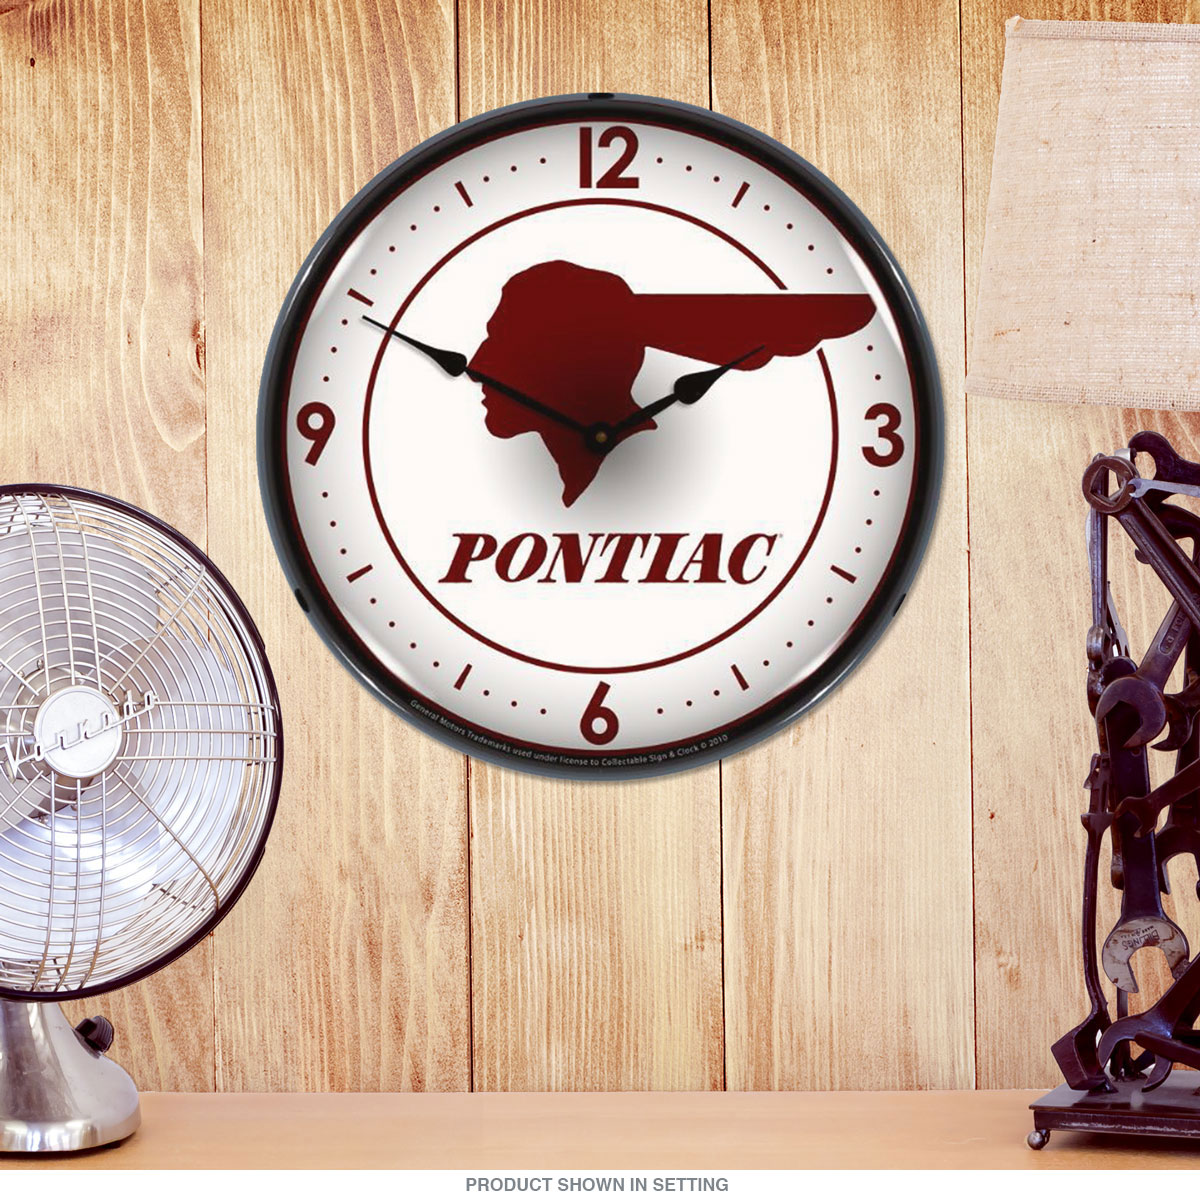 Pontiac Indian Head Logo Light Up Garage Clock